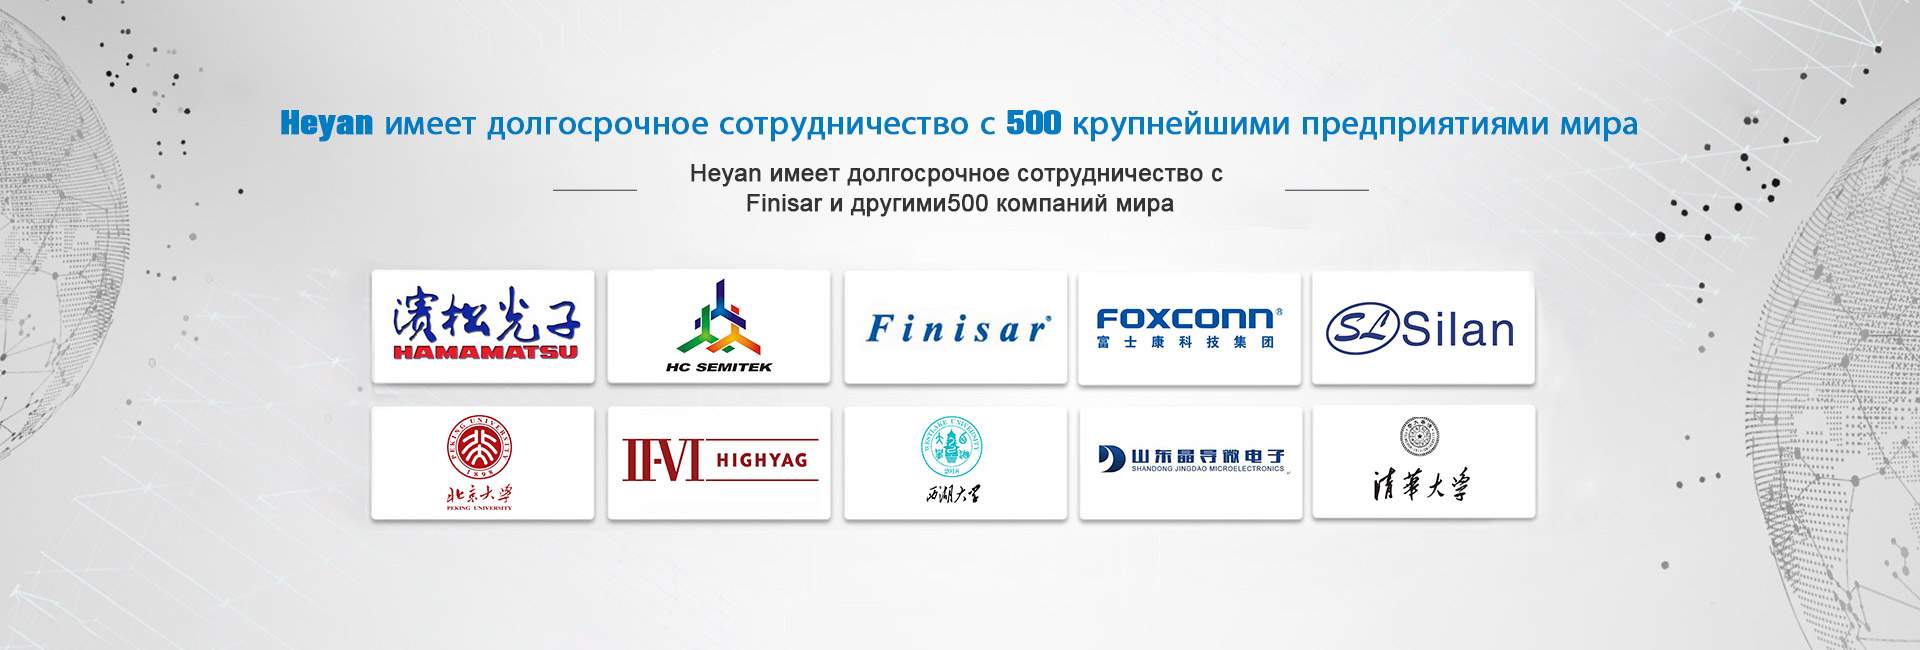 Long-term cooperation with Fortune 500 companies